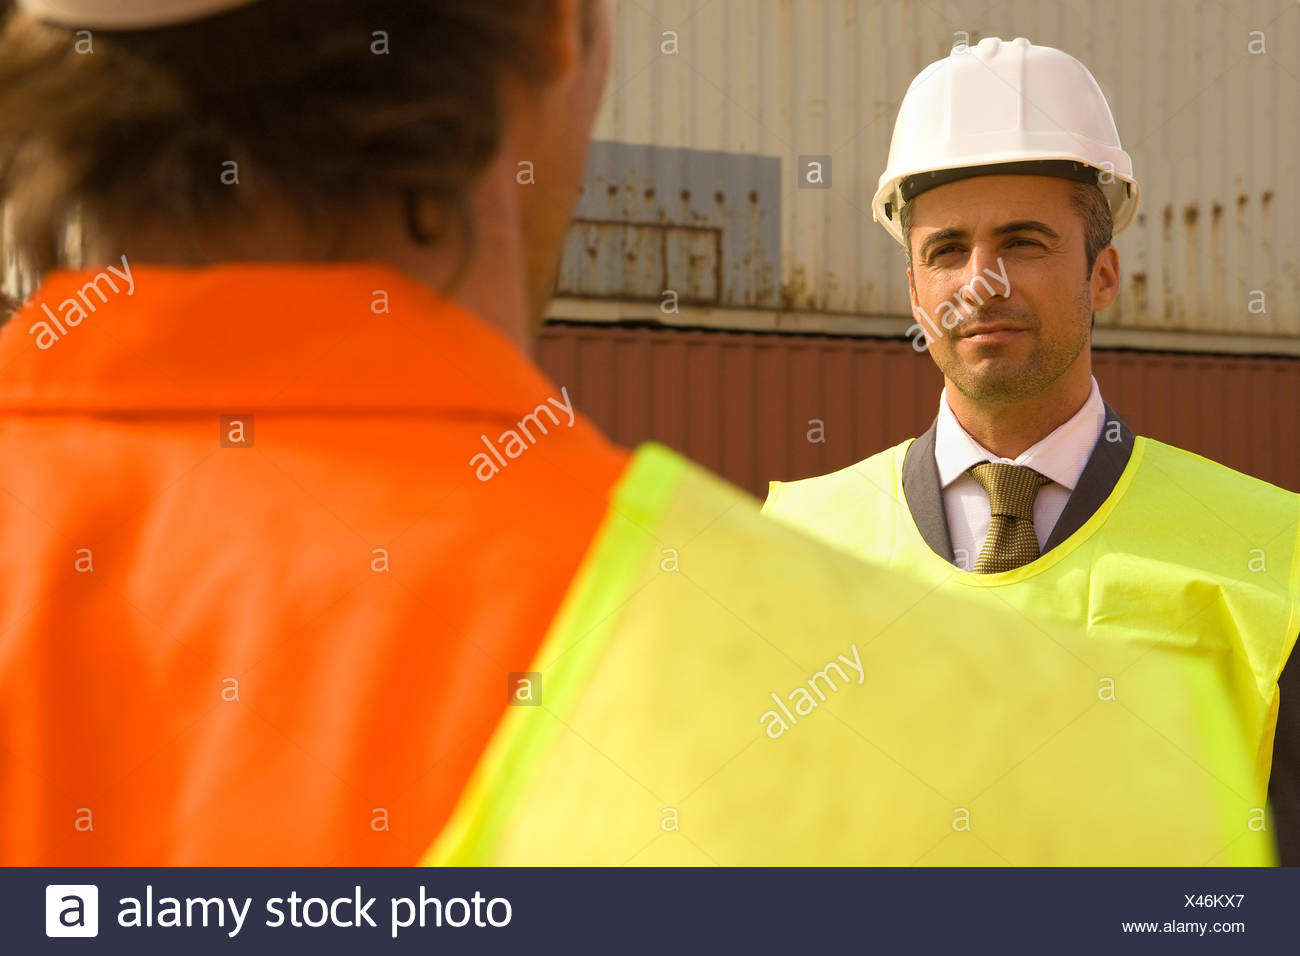 Businessman and a male dock worker wearing reflective clothing - Stock Image